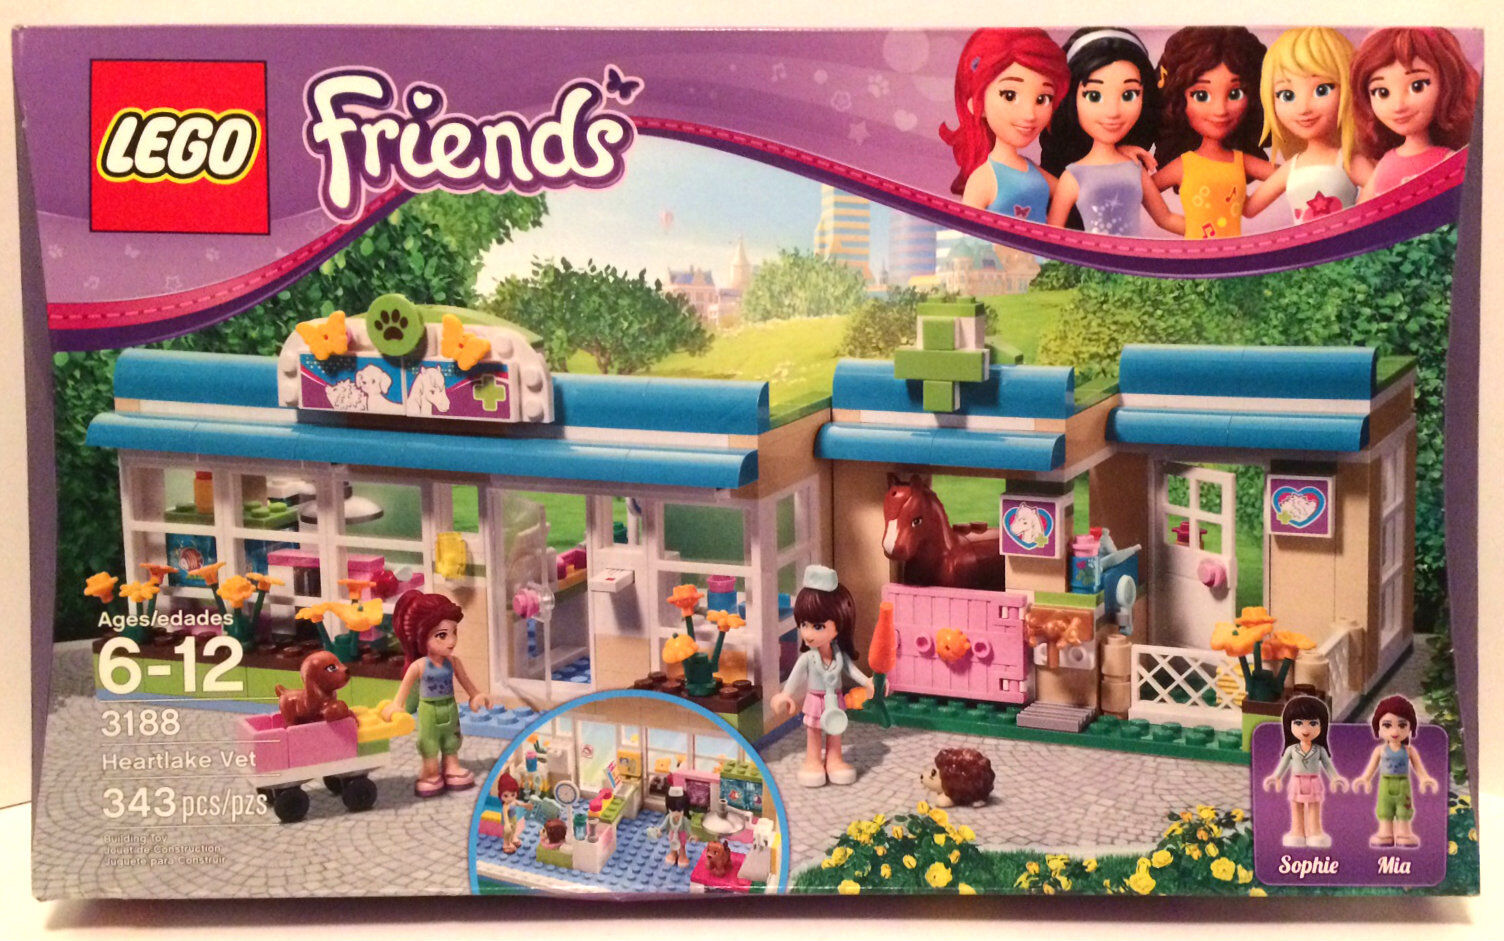 Brand Nuovo Sealed Retirosso Lego Friends 3188 Heartlake Vet 343 Pieces NEW - Other